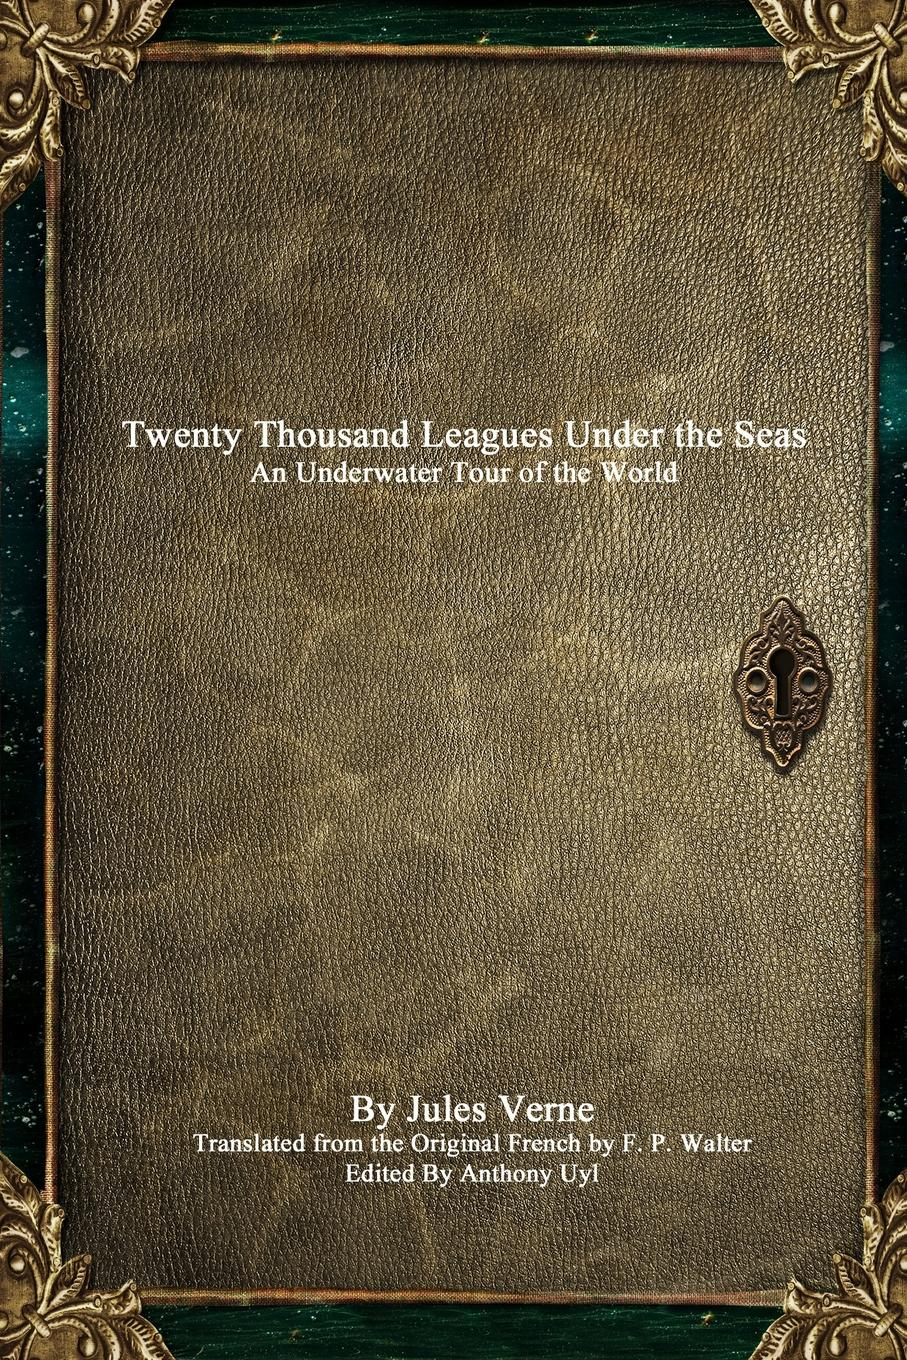 лучшая цена Jules Verne Twenty Thousand Leagues Under the Seas